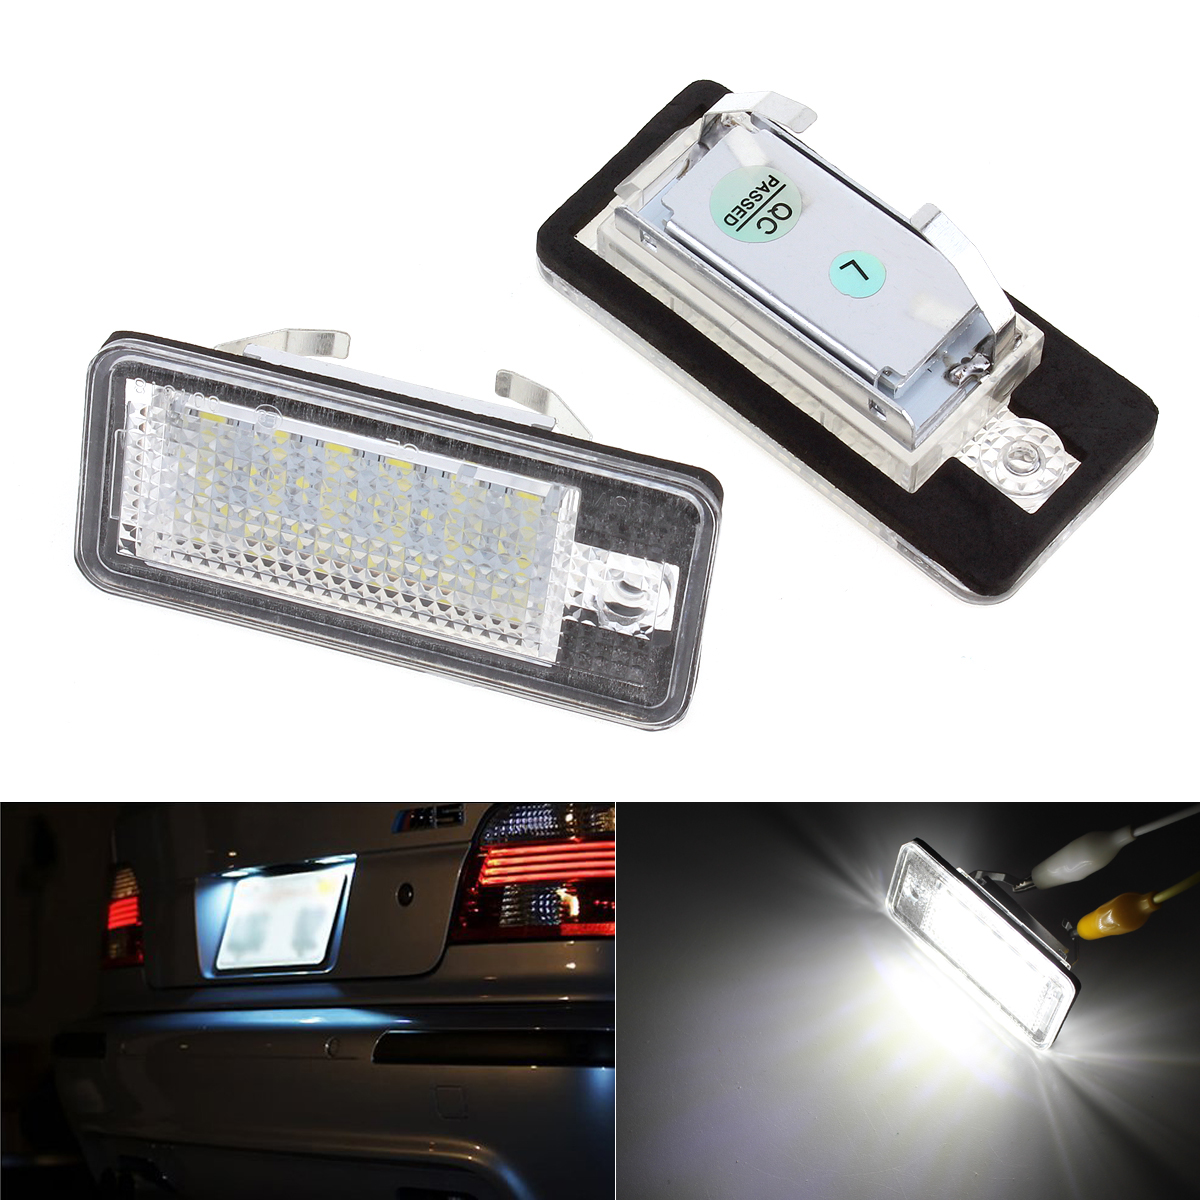 2Pc Car LED License Plate Lights 12V SMD3528 Number Plate Lamp Bulb Kit For  Audi A6 C6 Q7 A4 B7 A4 B6 8E A3 S3 A8 S8 S6 RS4 RS6 smaart v 7 new license